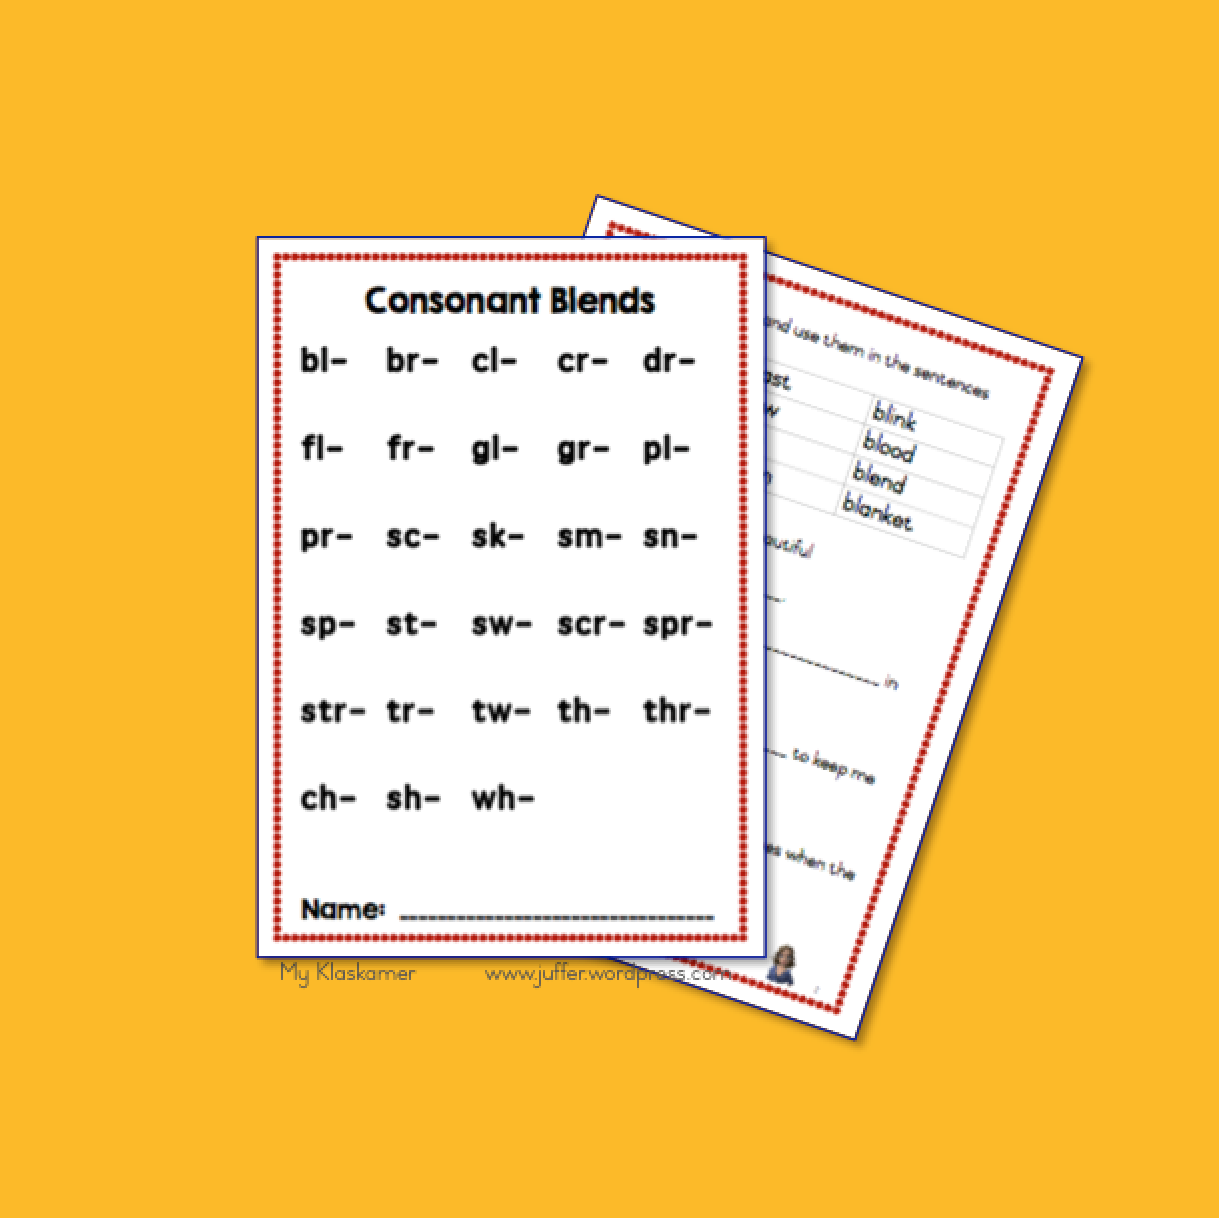 Consonant Blends Worksheets Bl Br Cl Cr Dr Fl Fr